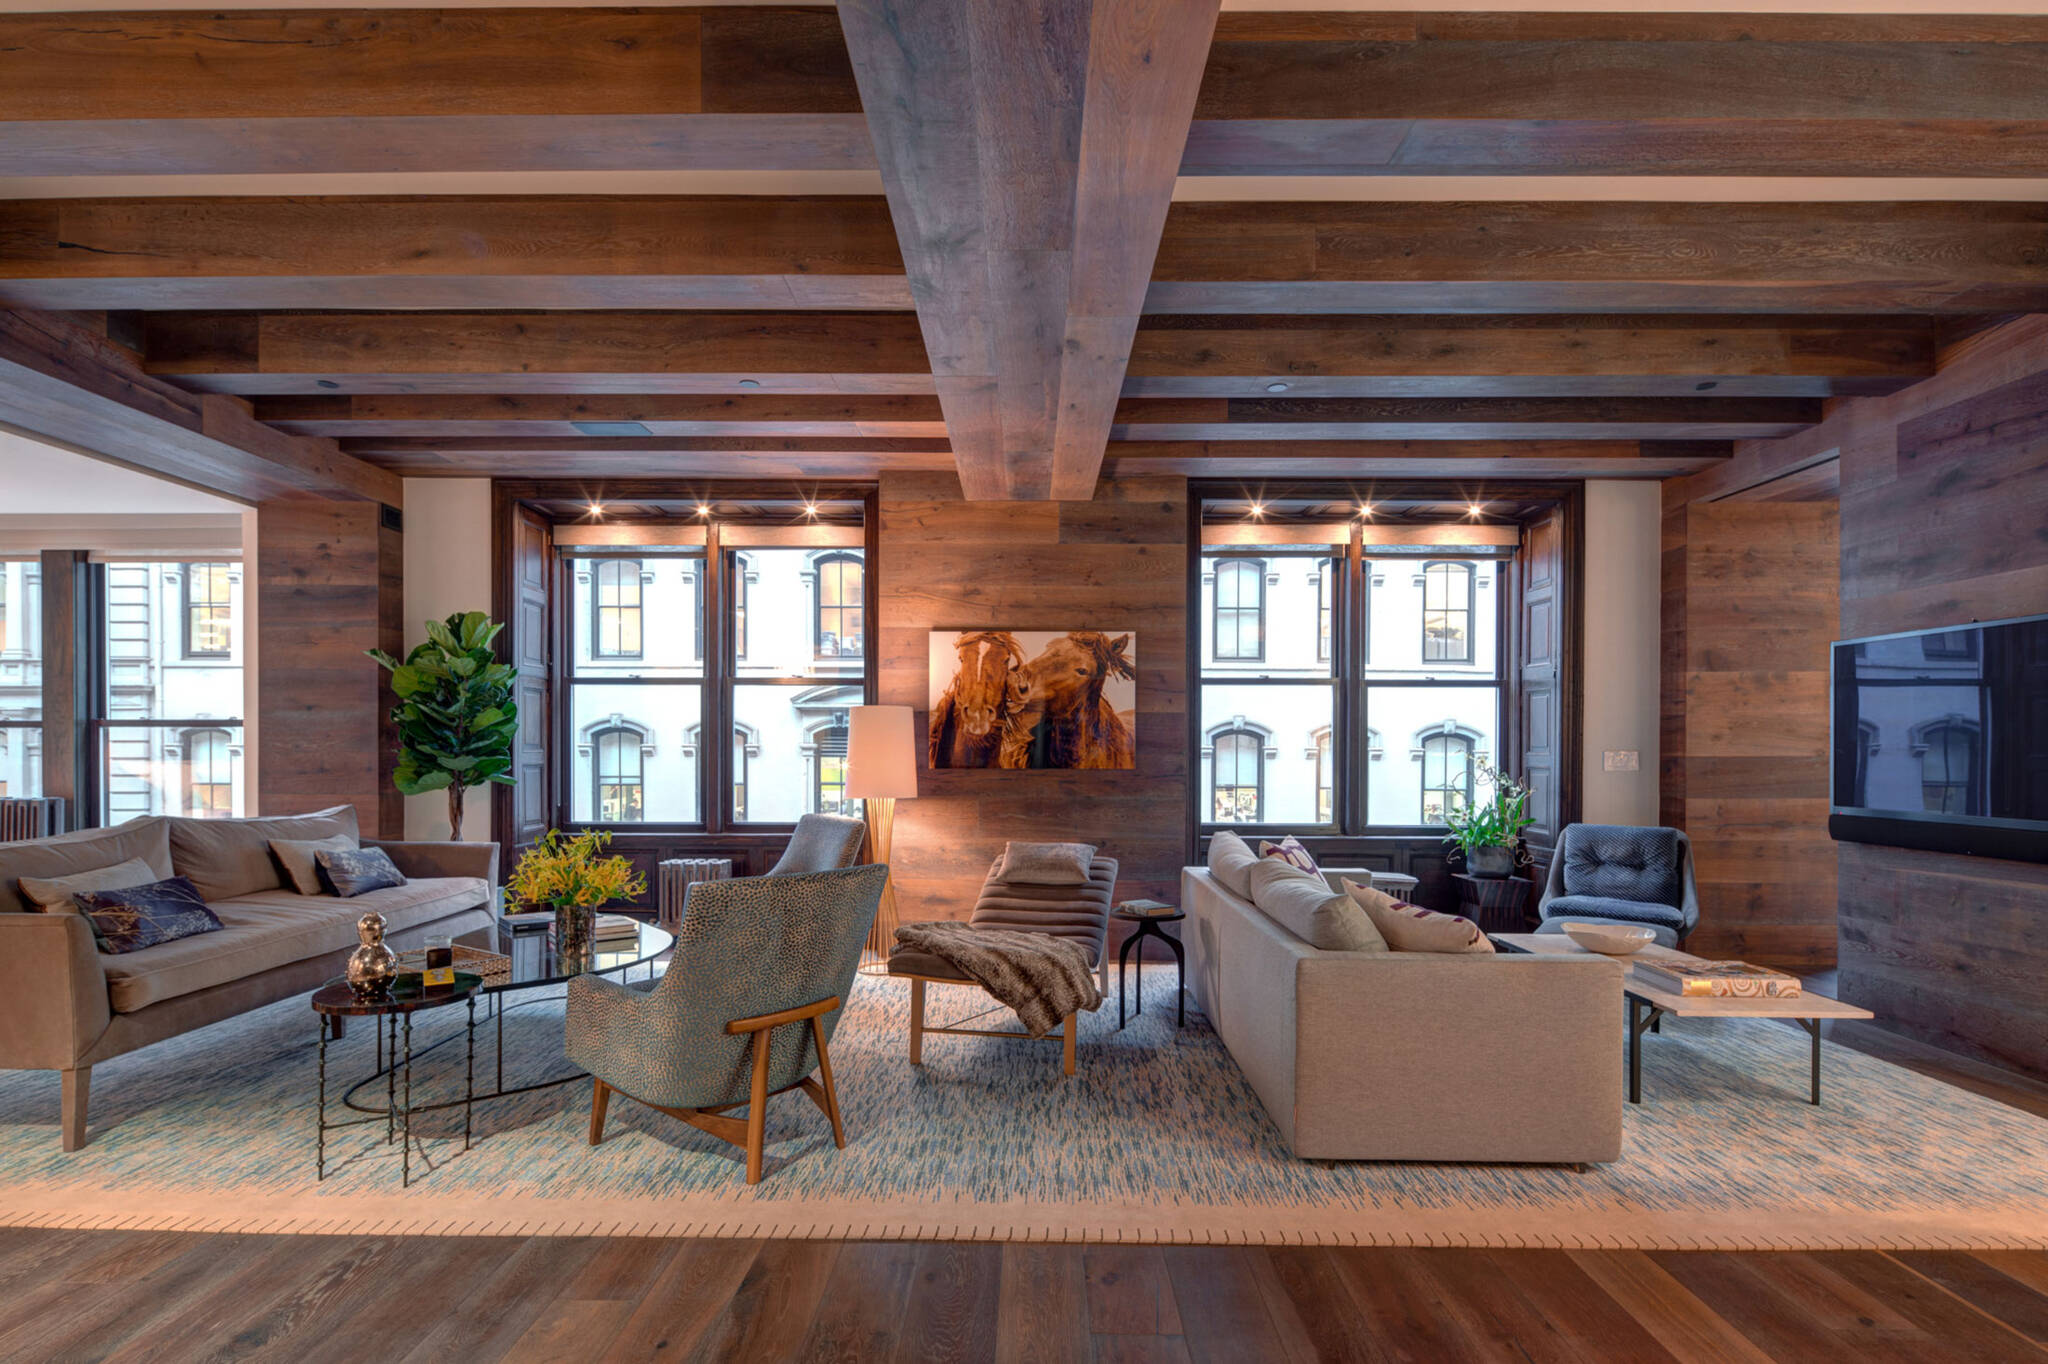 Renovation project of a loft in Union Square, New York City designed by the architecture studio Danny Forster & Architecture